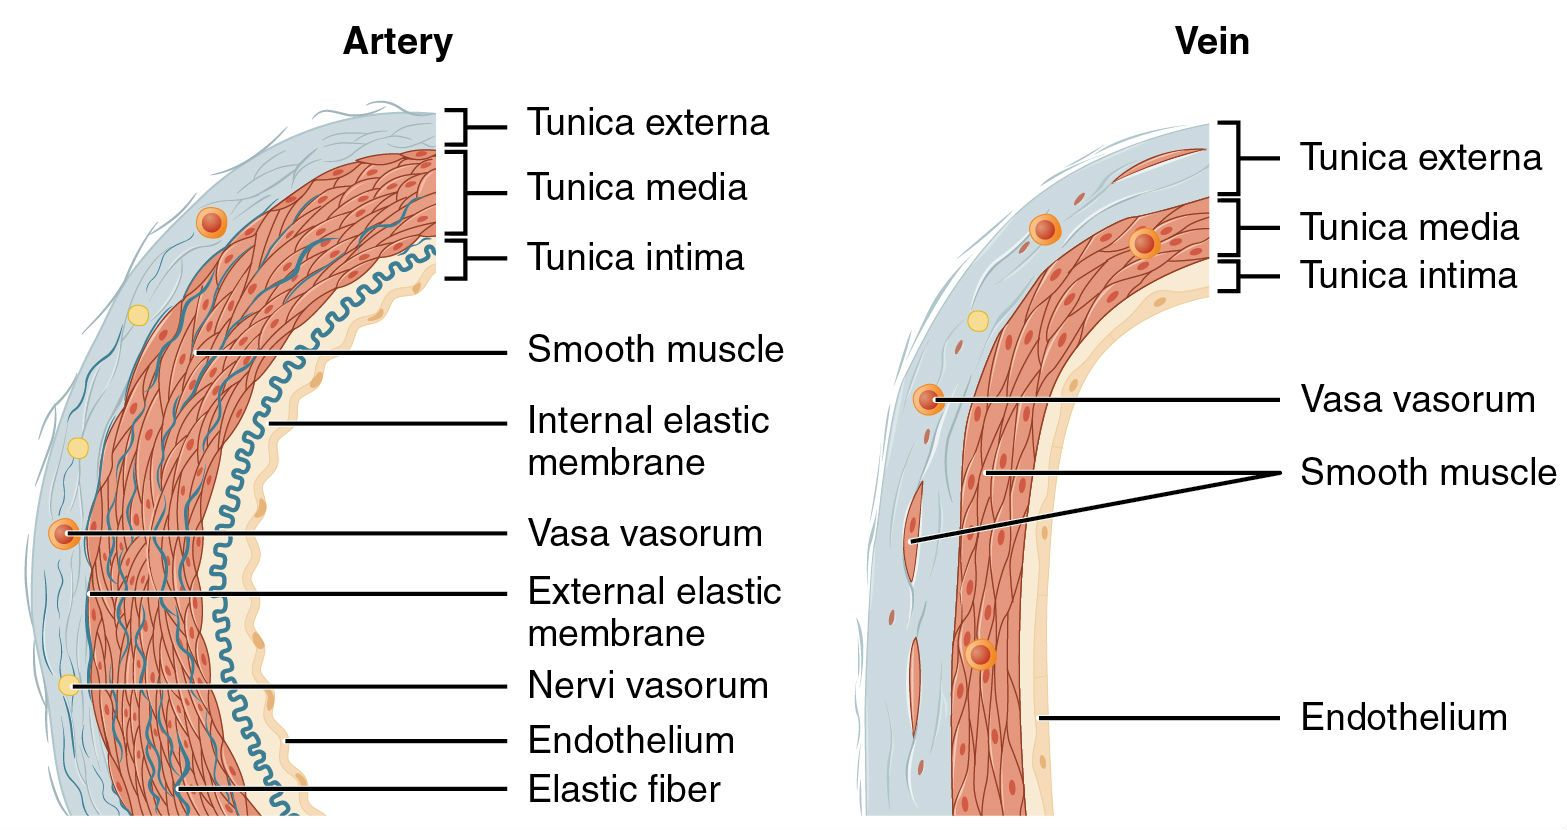 Artery and Vein vessel wall structure SimpleMed